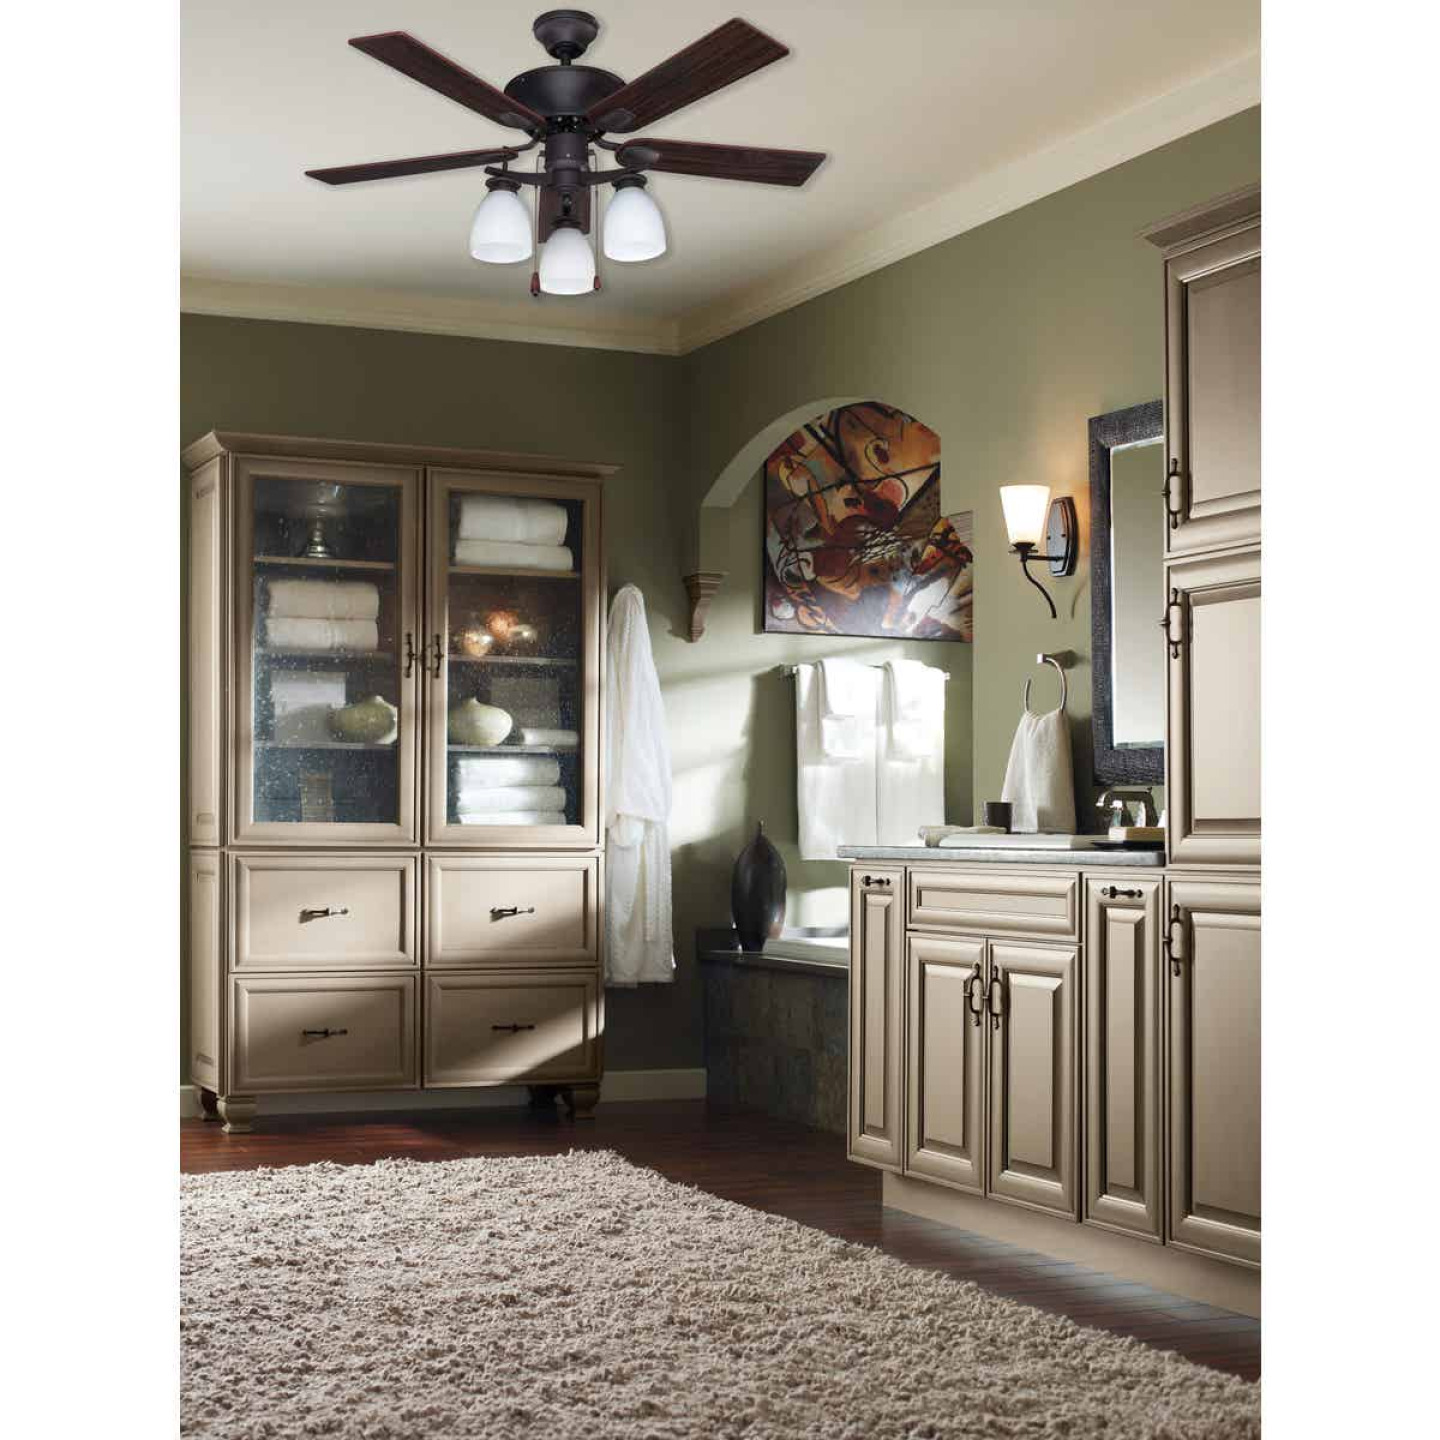 Home Impressions New Yorker 42 In. Oil Rubbed Bronze Ceiling Fan with Light Kit Image 2